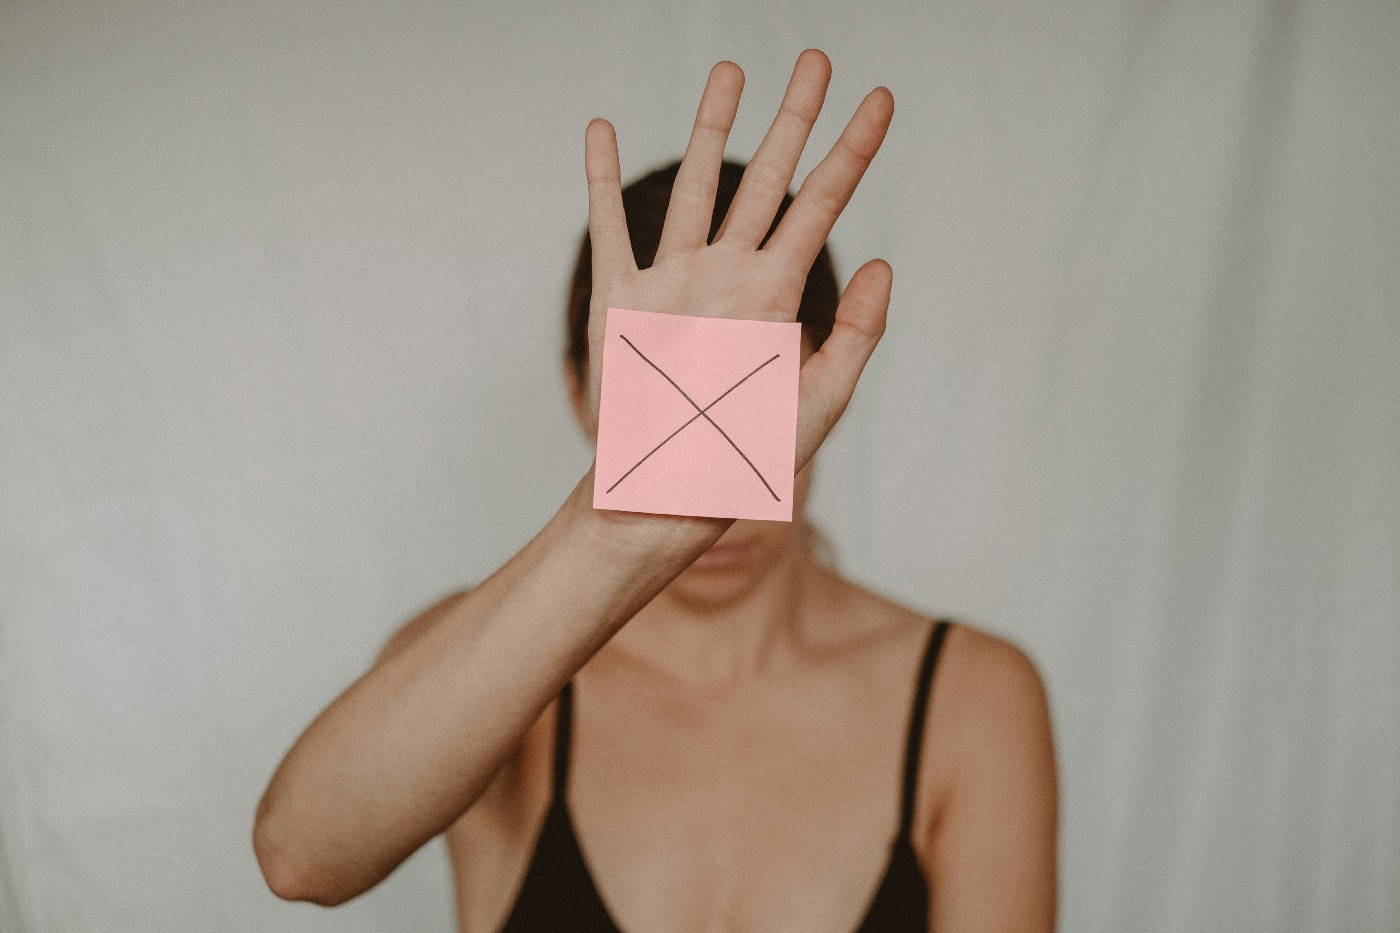 A lady showing a postit marked X